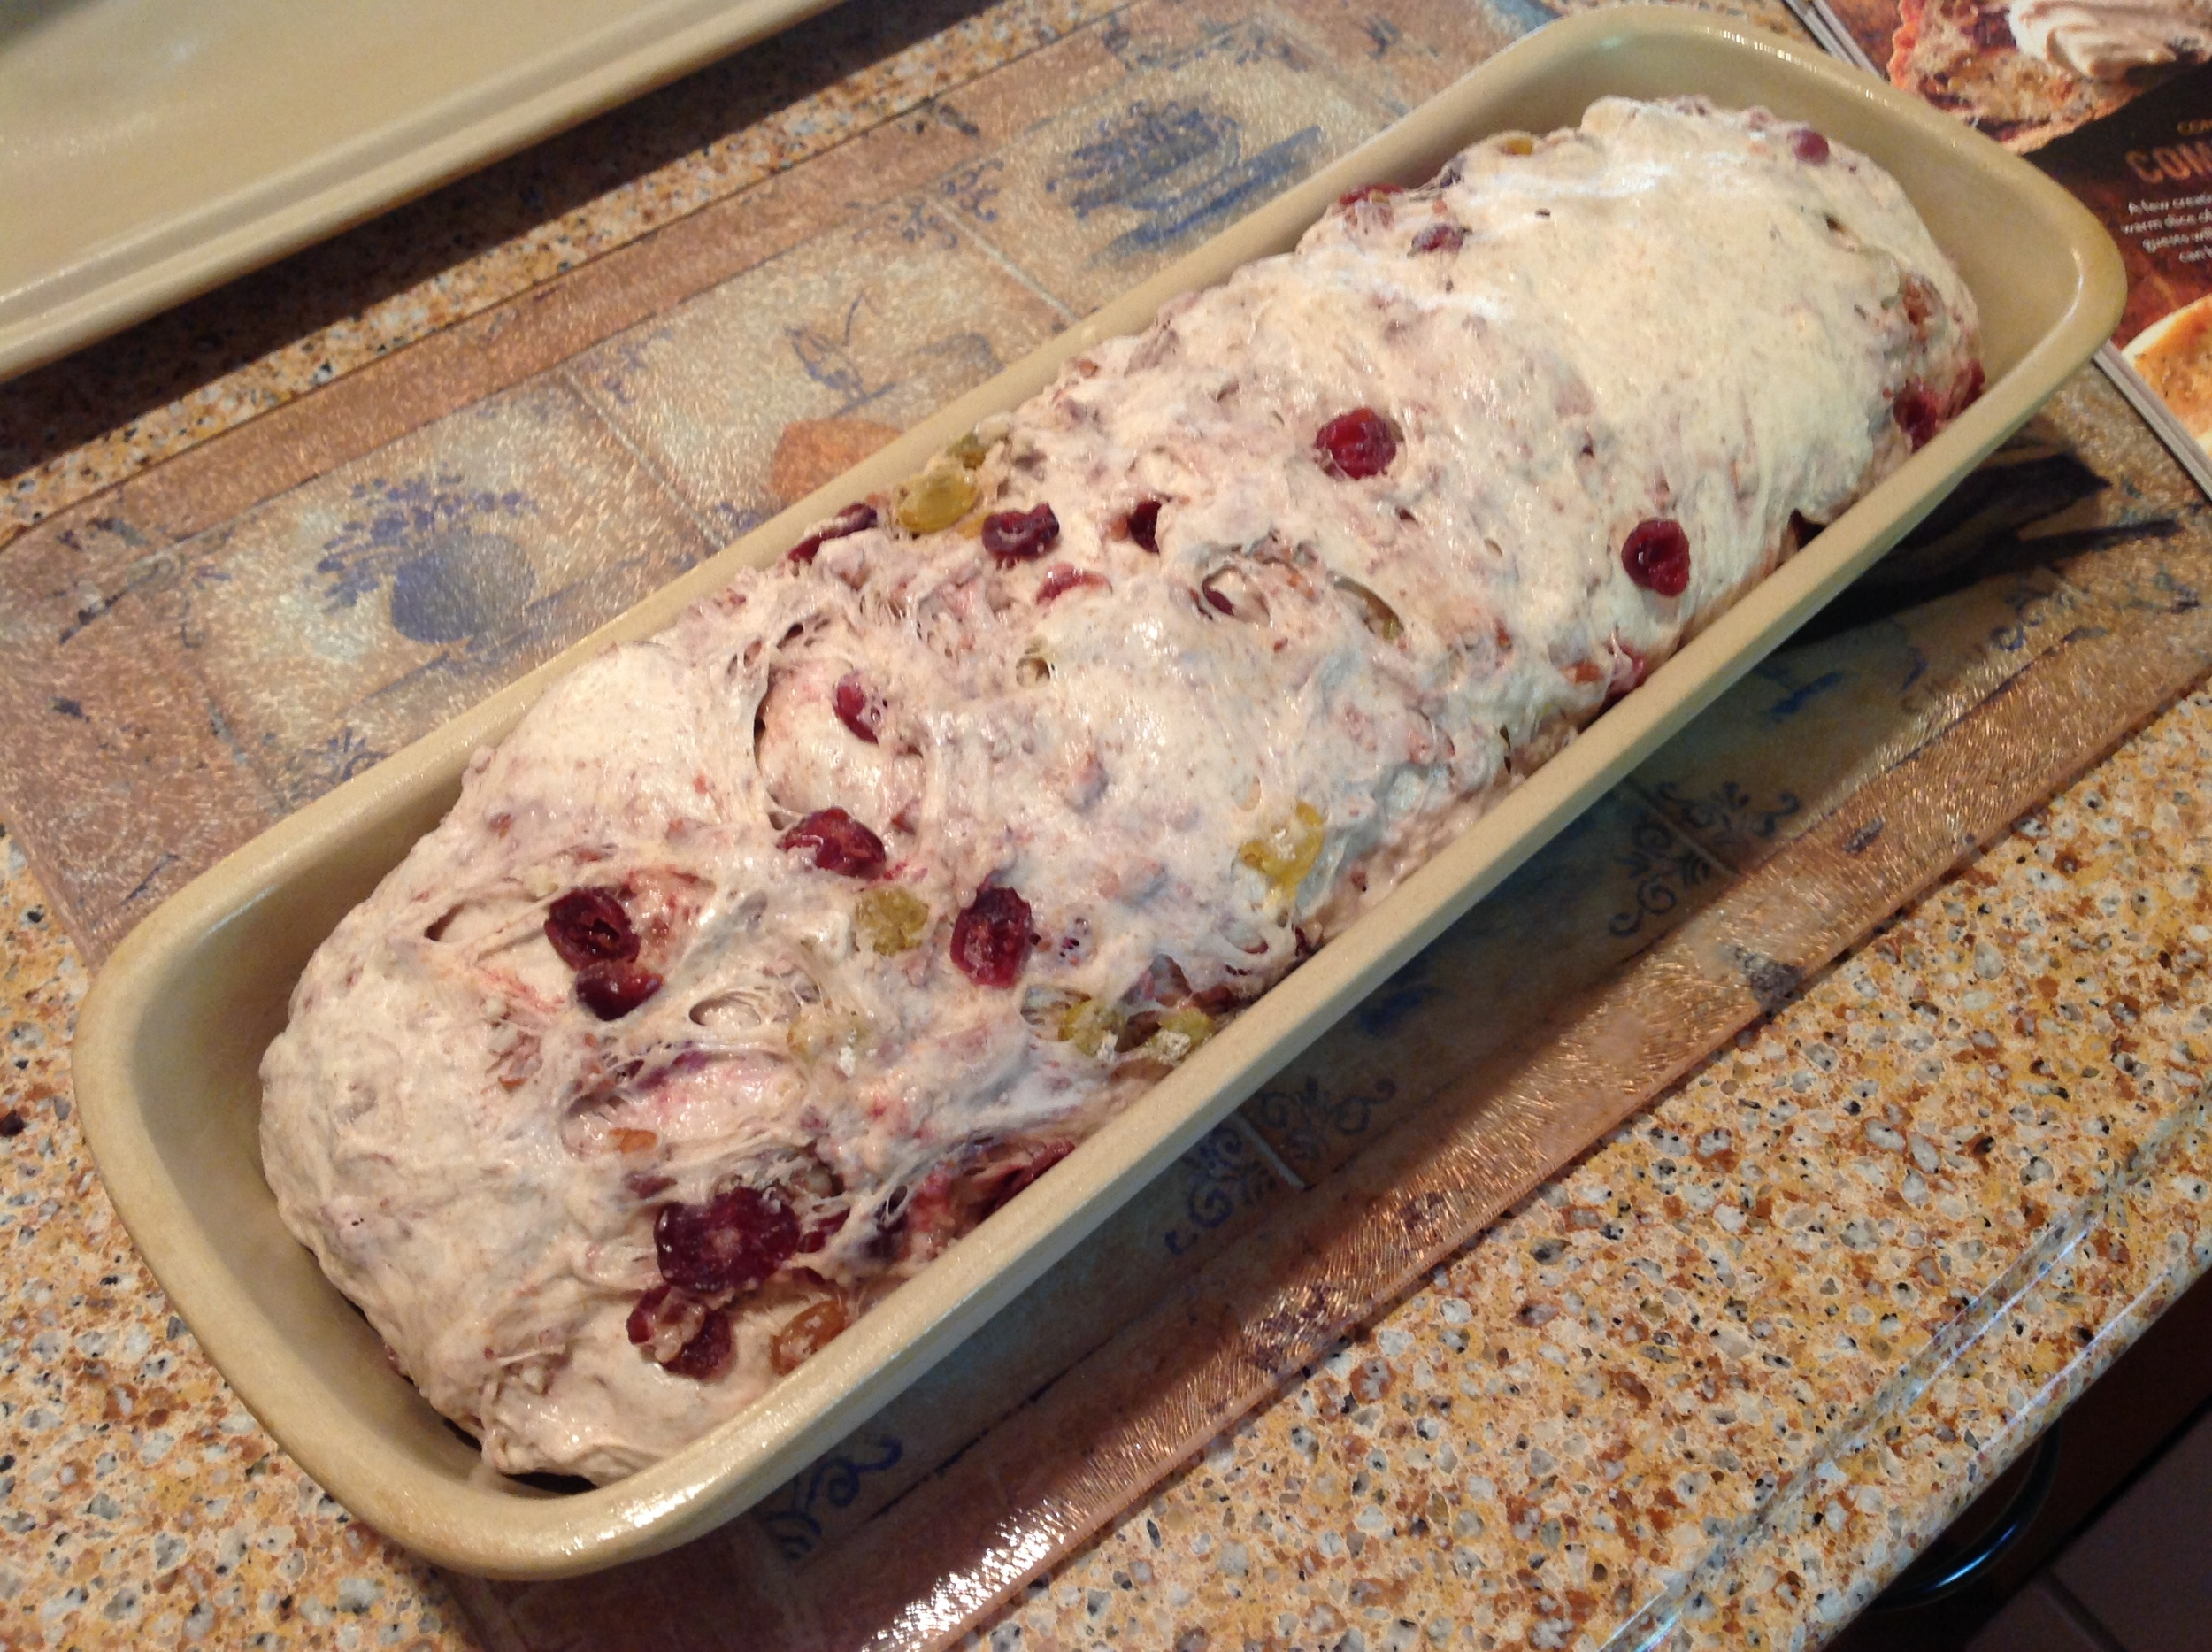 Second rise complete ... ready for the oven!